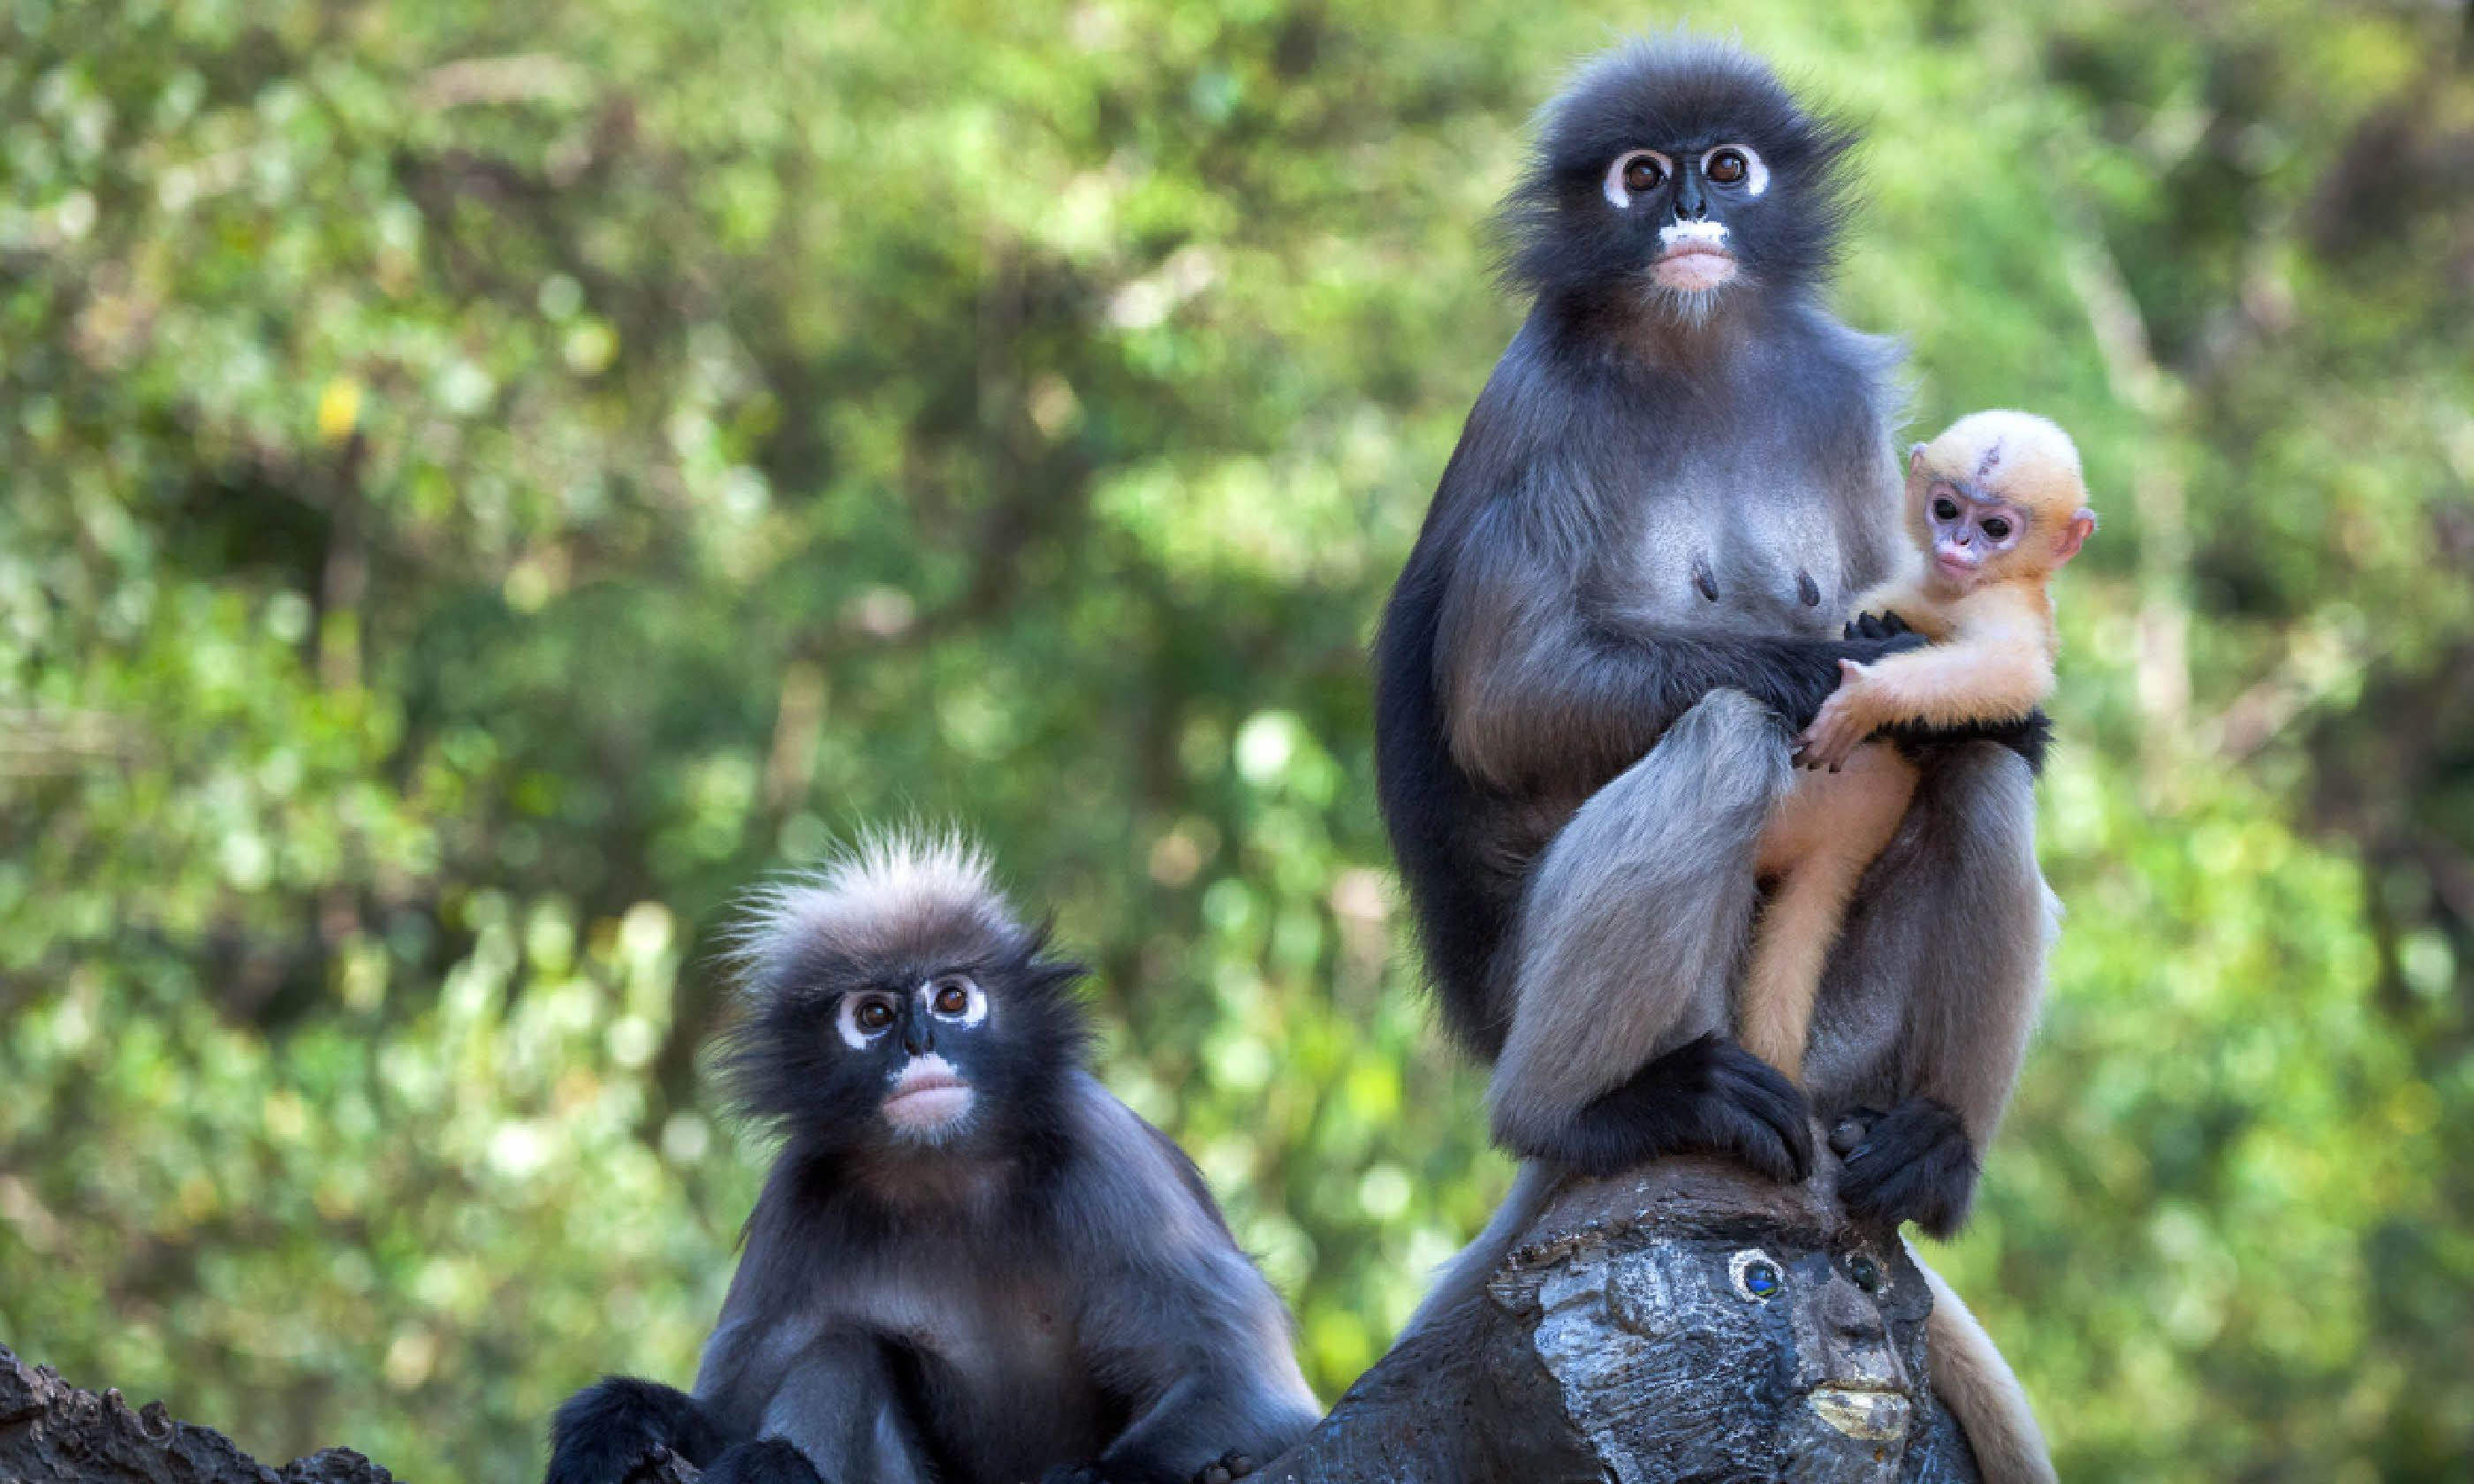 Dusky leaf monkeys (Shutterstock)